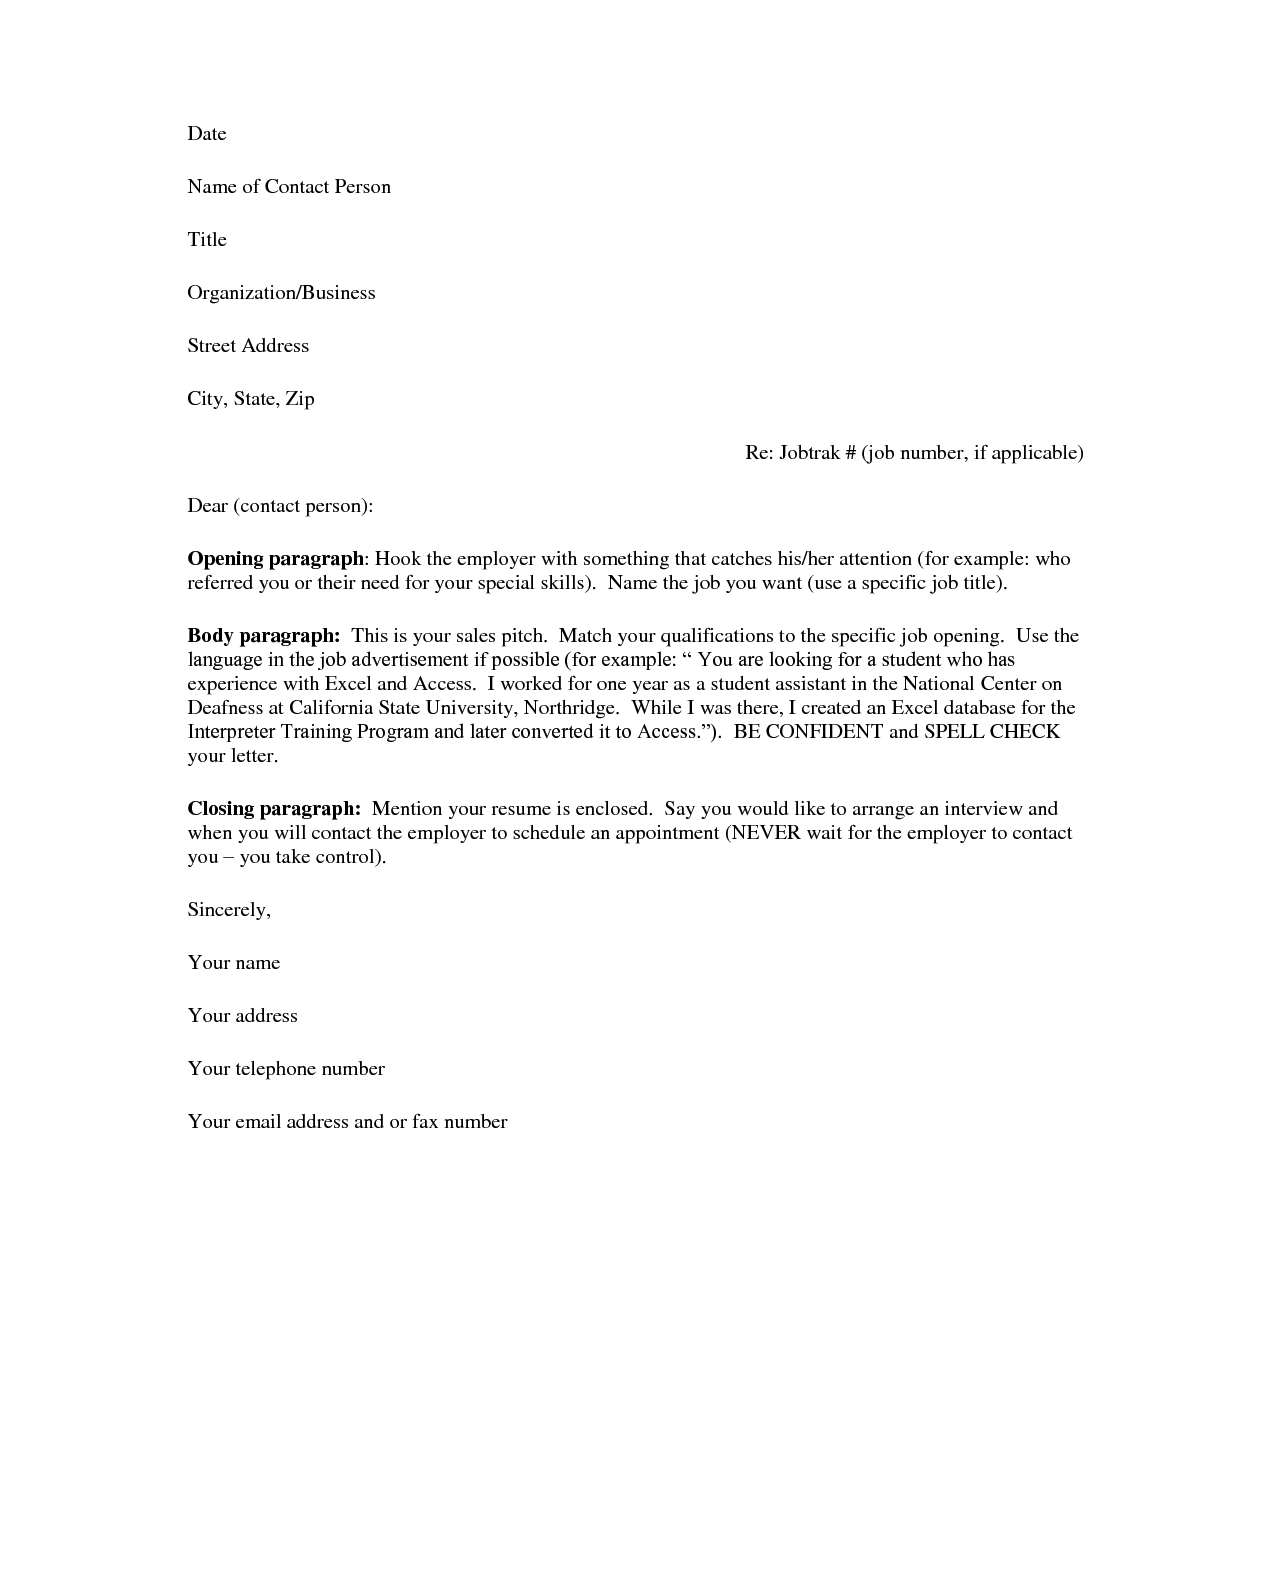 Resume Cover Letter Format Sample: Resume Example, Urban Pie Resume Cover Letter Example